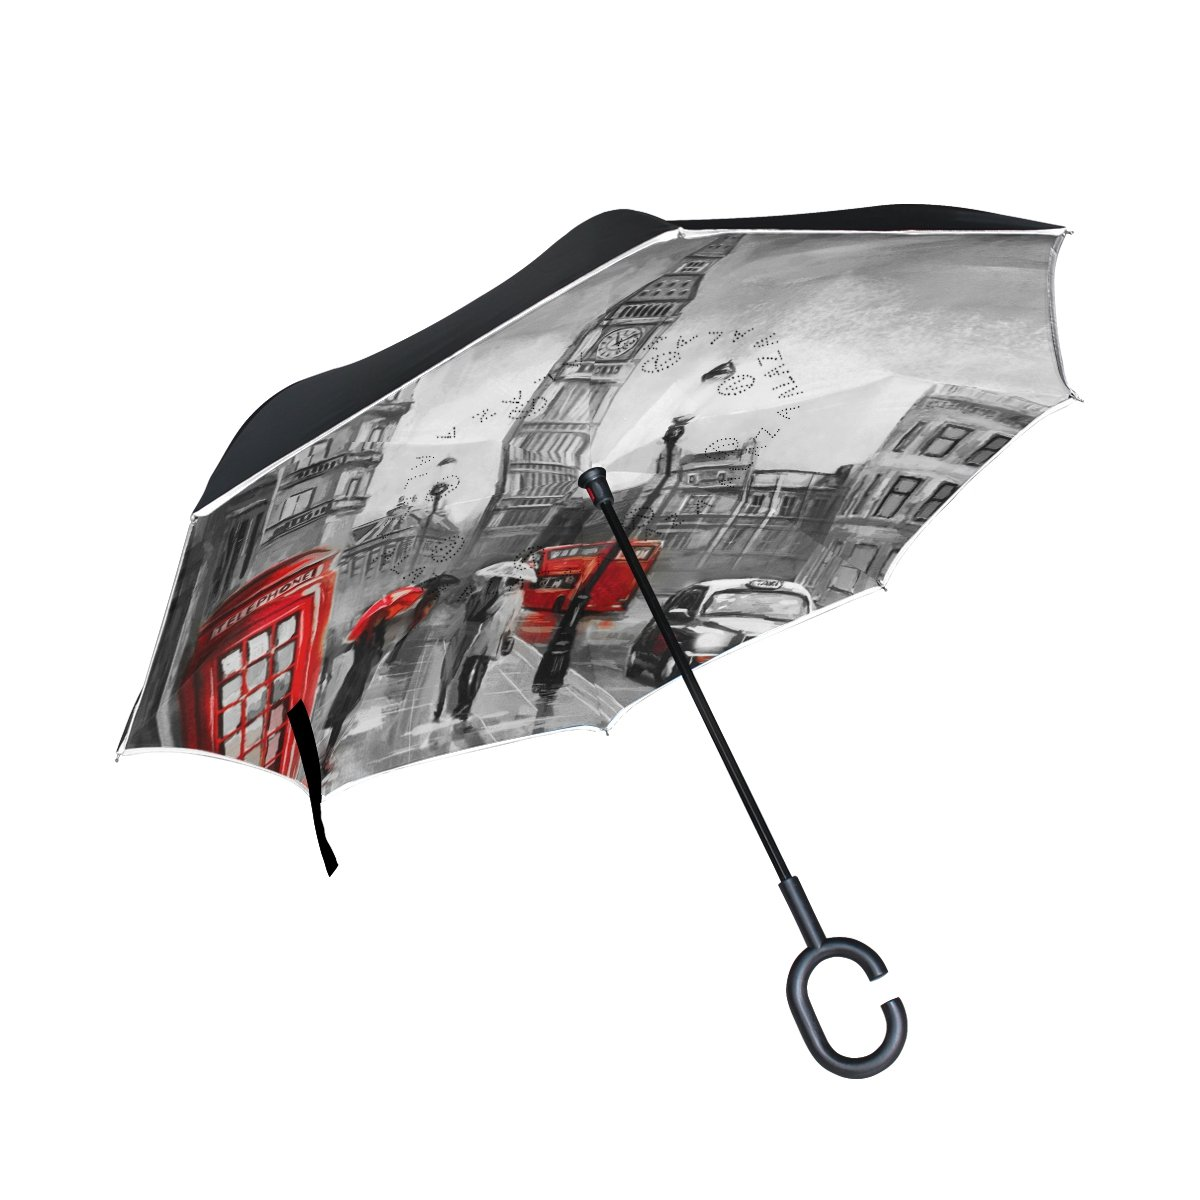 ALAZA Double Layer invertito Umbrella Auto Reverse Umbrella Big Ben di Londra pittura a olio antivento UV Proof di corsa esterna Umbrella My Daily